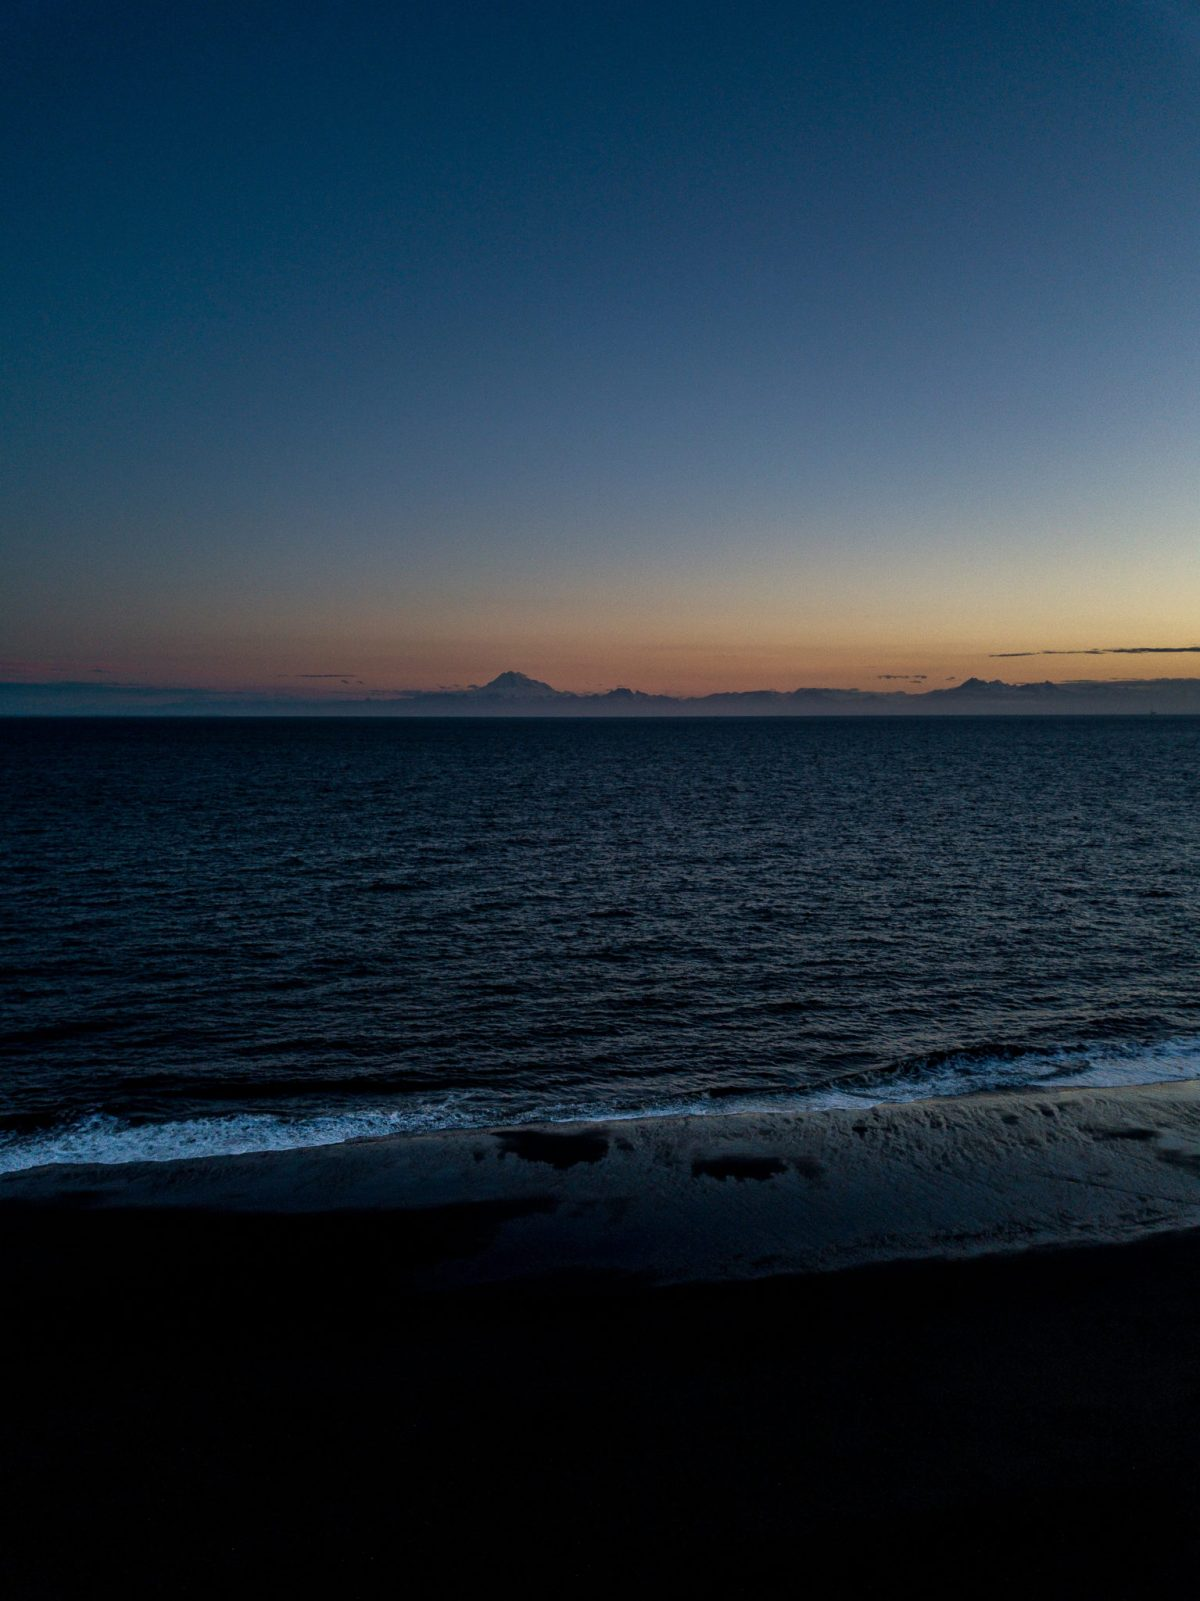 The ocean with mountains in the background, photo taken during the early morning hours.